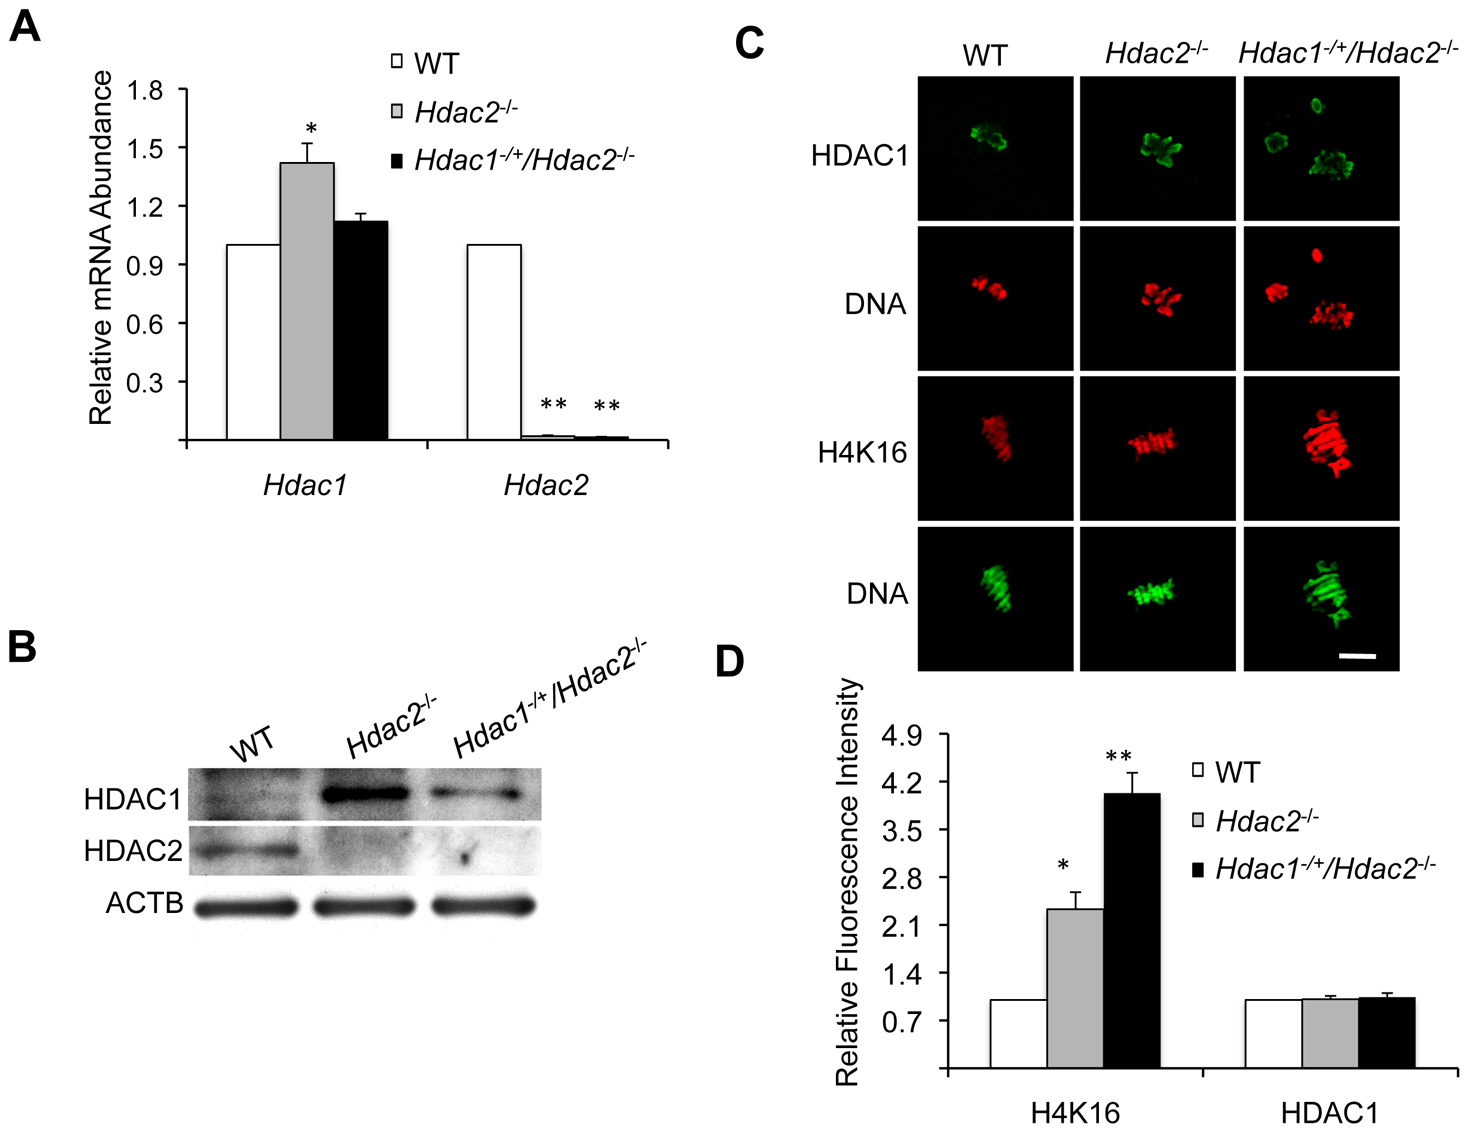 Depletion of maternal HDAC2 results in increased histone H4K16 acetylation following oocyte maturation.